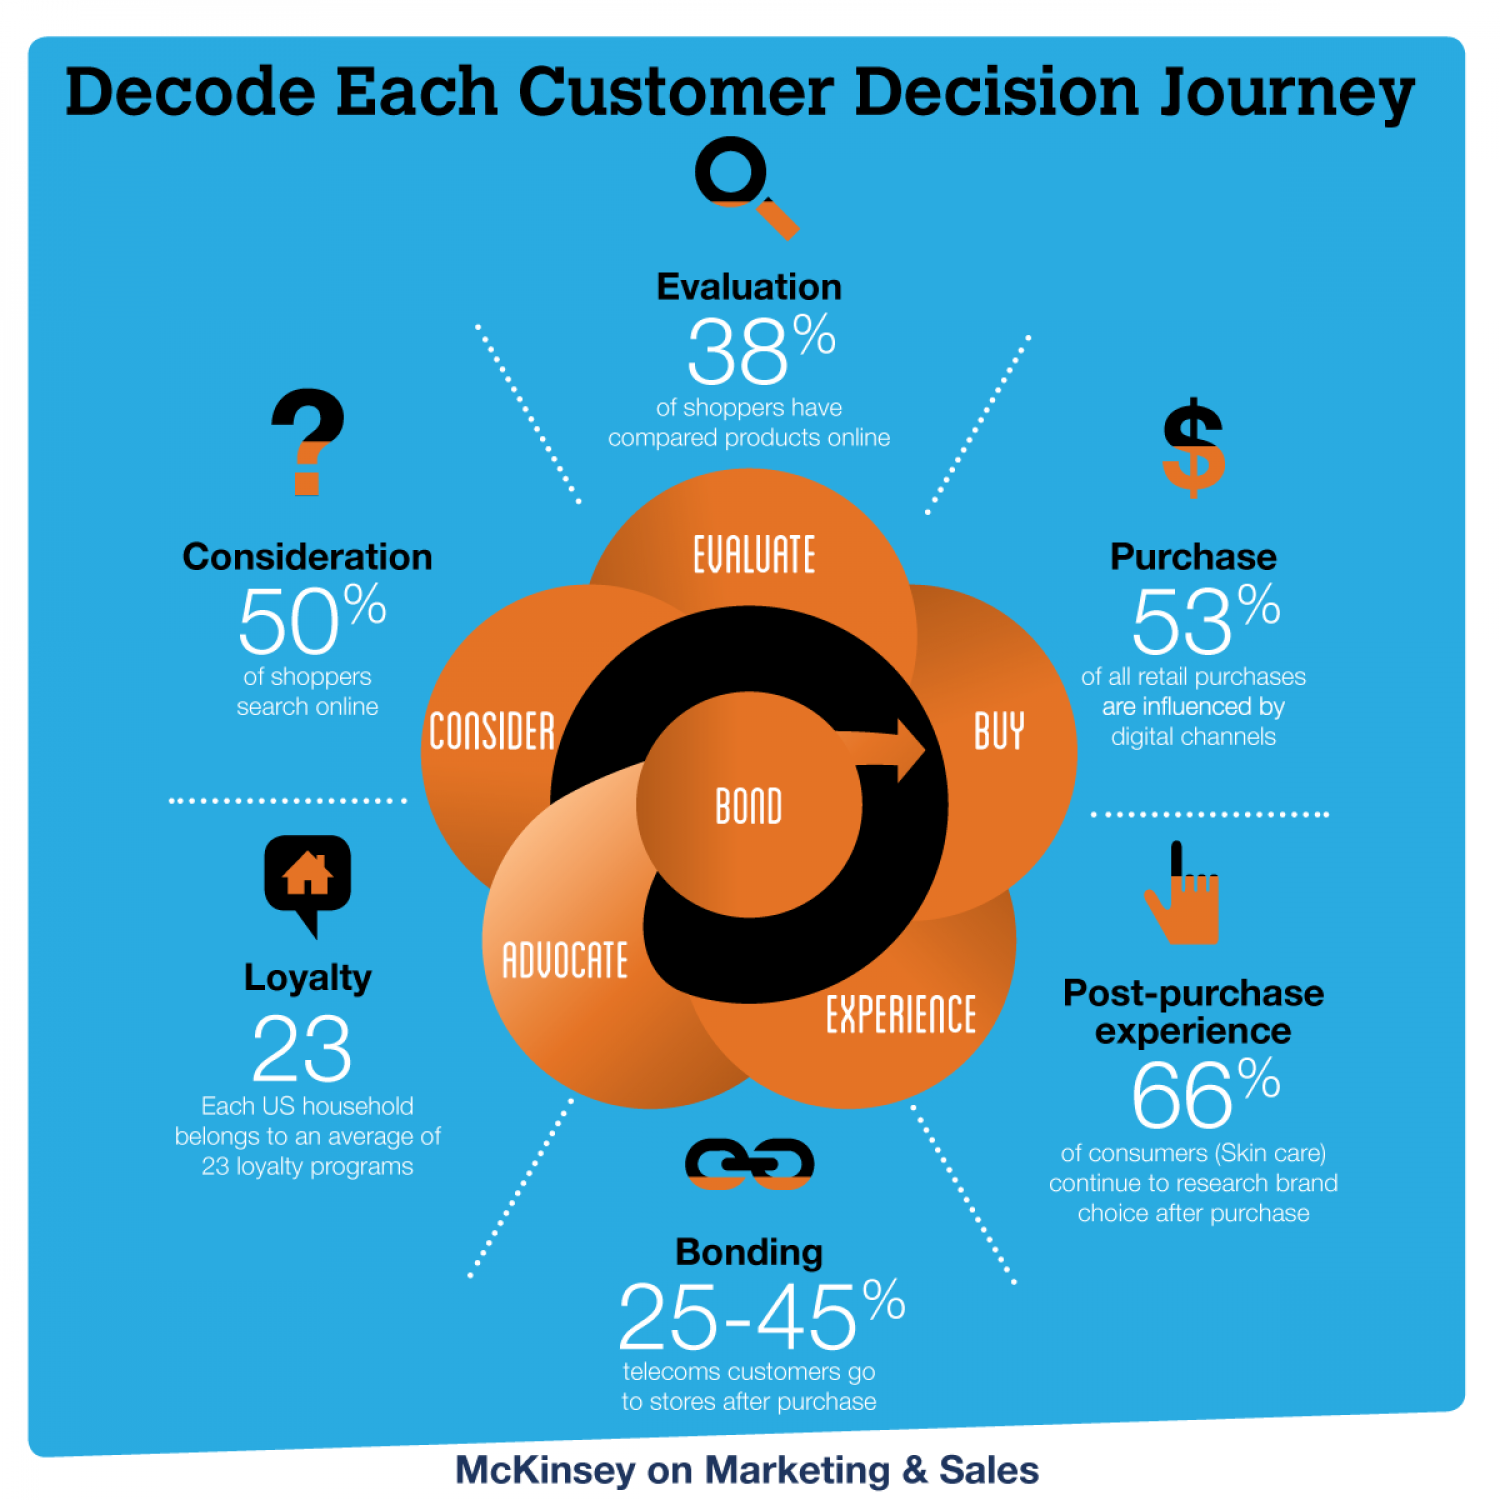 decode each customer decision journey